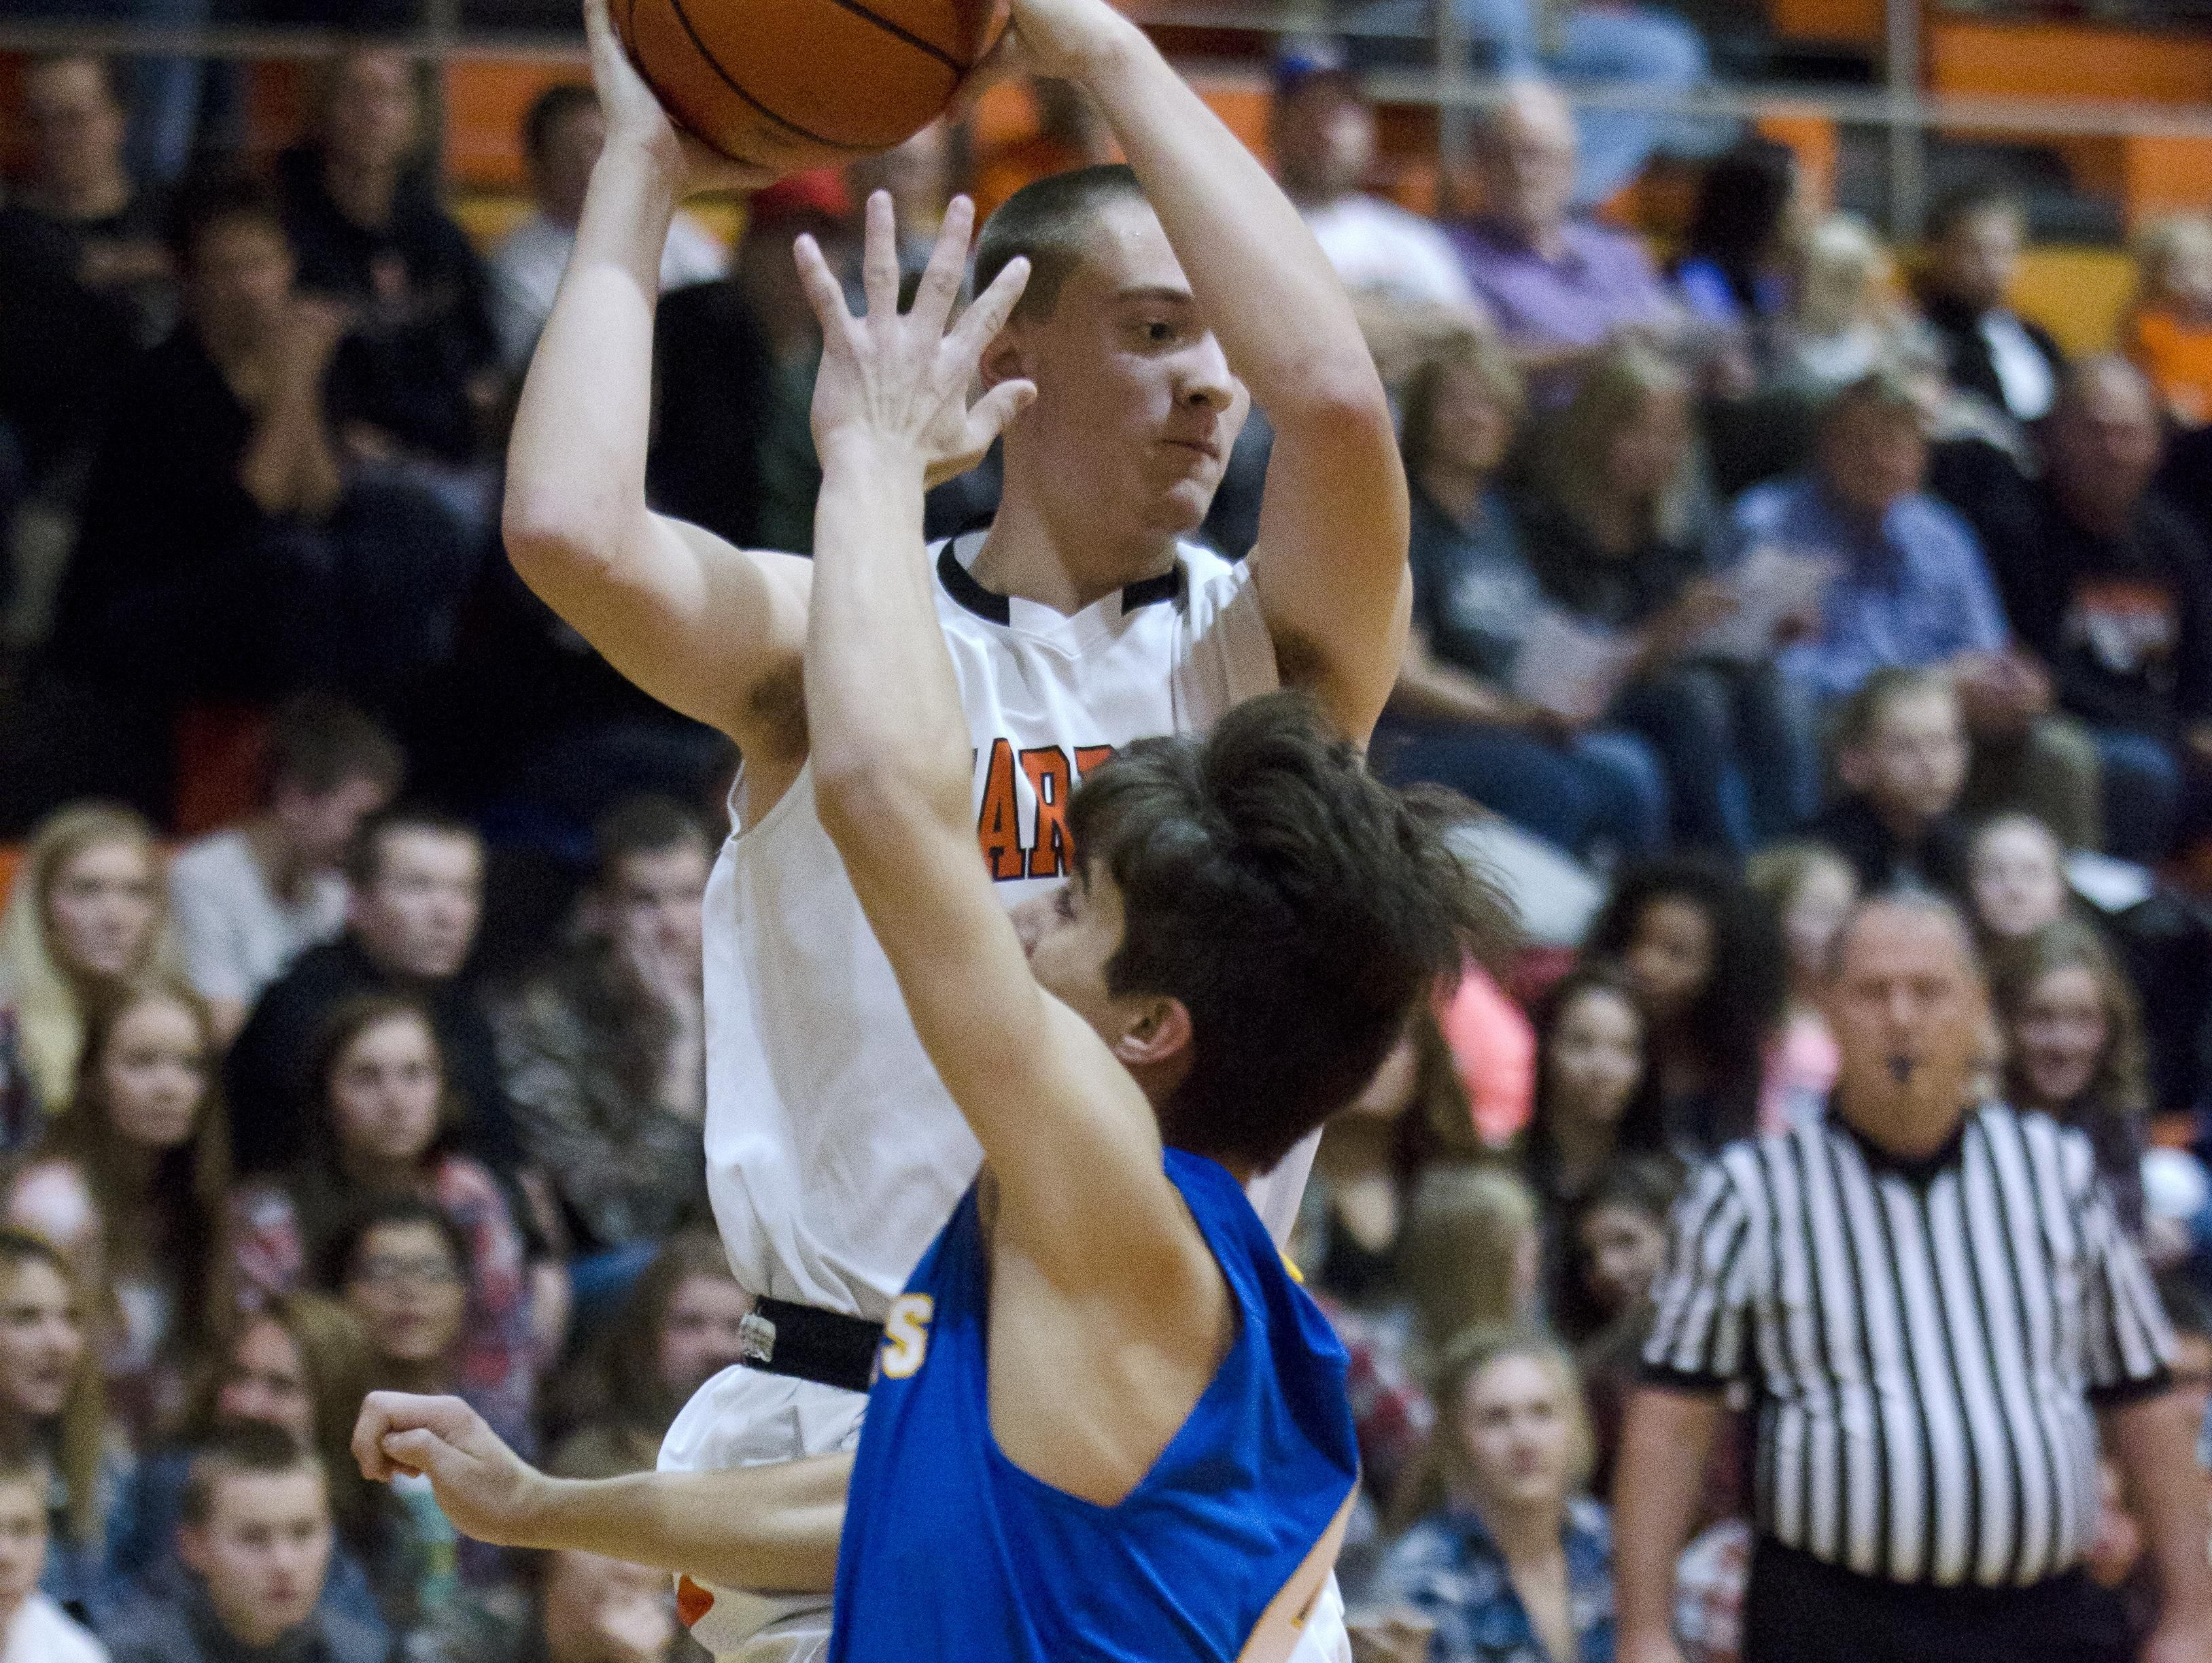 Carson Rentz of Dell Rapids passes the ball Friday, Dec. 9, against West Central in the Quarriers' season opener at Dell Rapids.